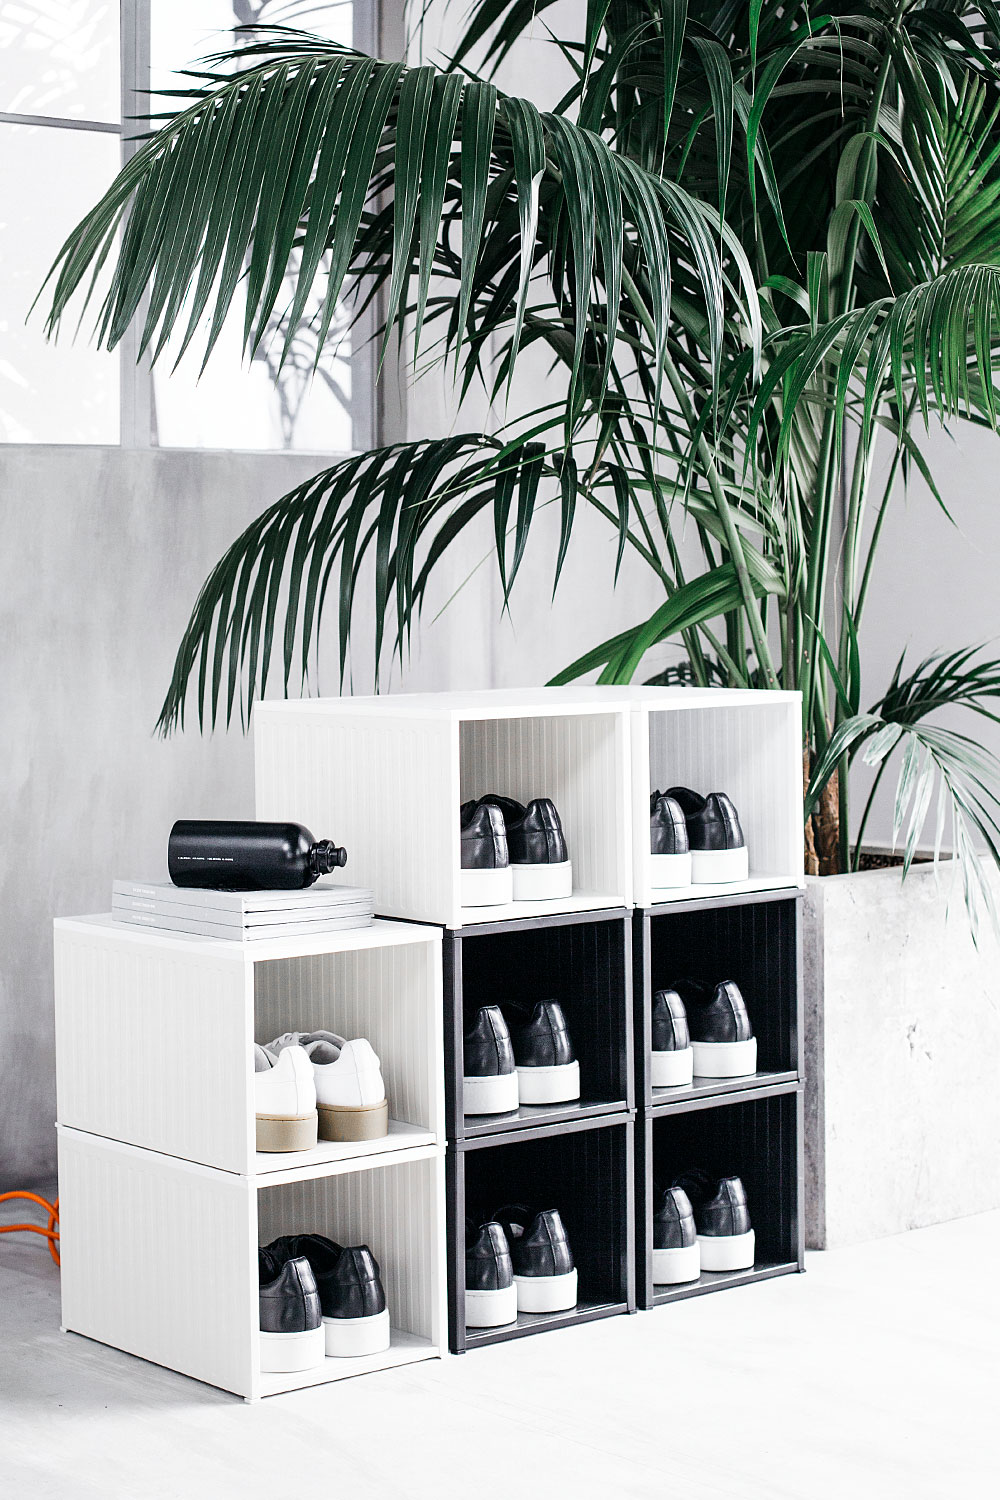 streetware styles bei ikea die lifestyle kollektion sp nst unhyped. Black Bedroom Furniture Sets. Home Design Ideas